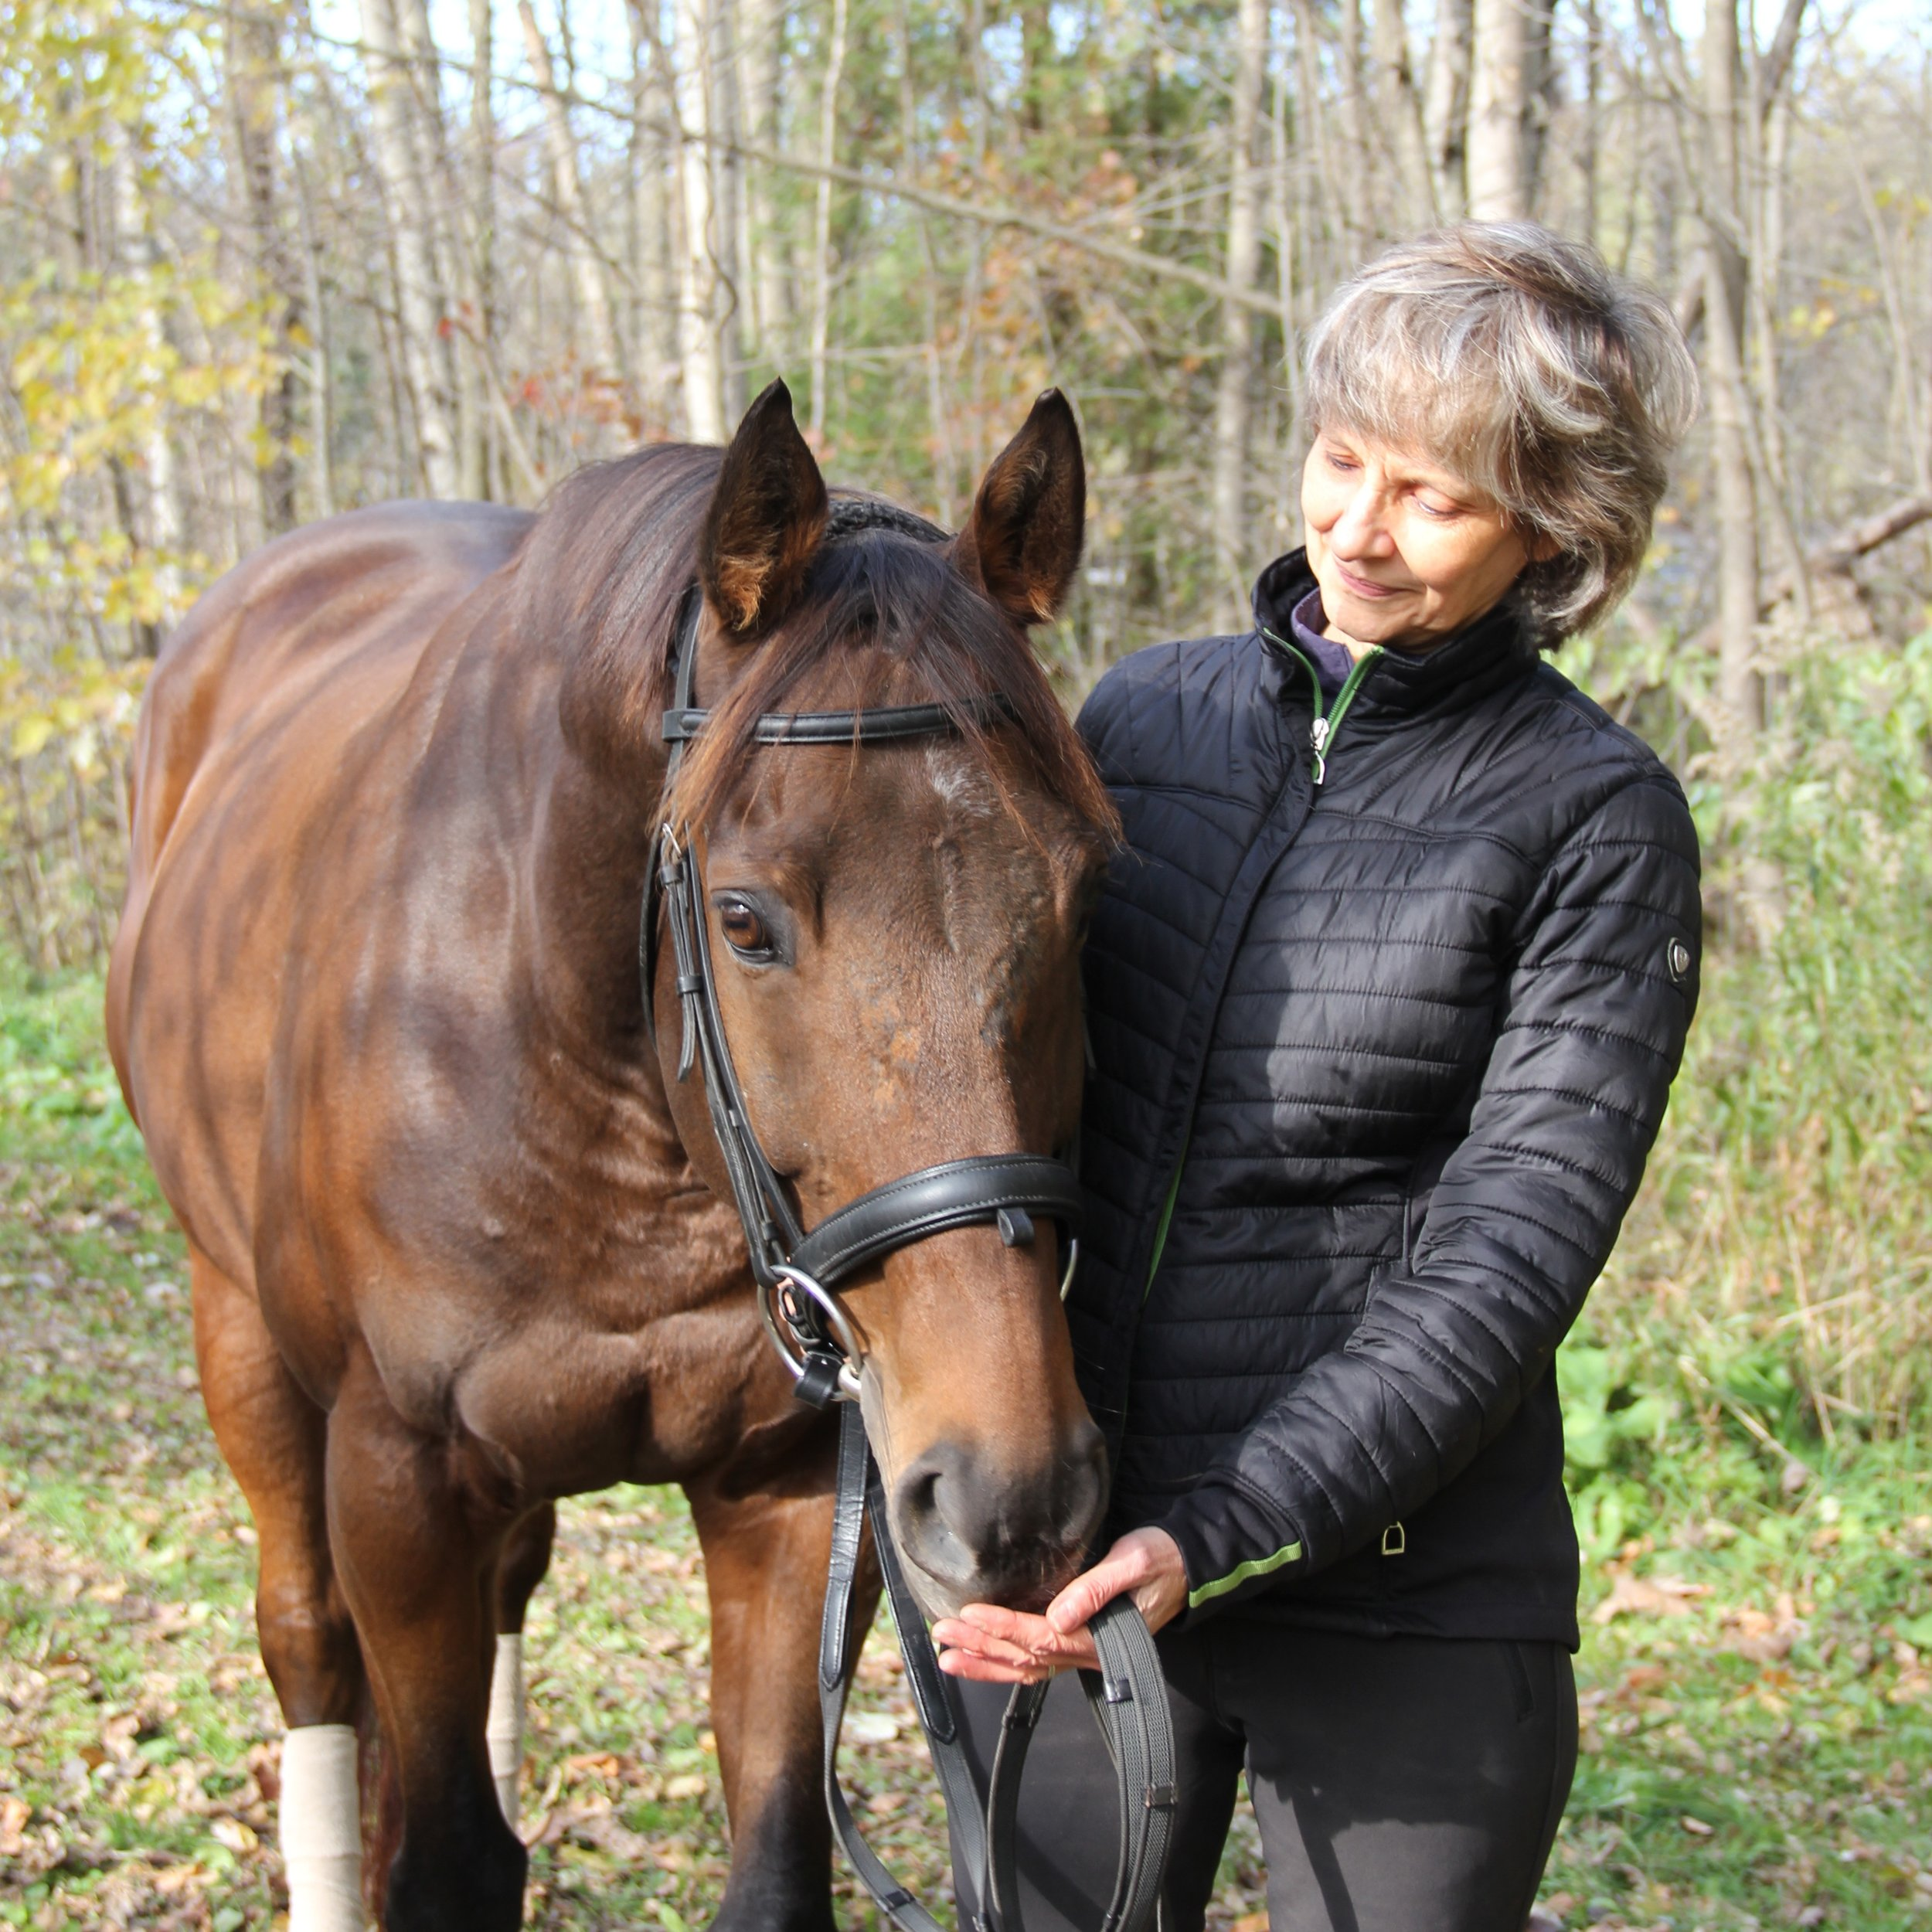 """Louise Spilsbury - """"My TB Larry has had monthly bodywork sessions from Leslie for half a year now. She has identified areas of tension and pain in him that I wasn't aware of, and through gentle touch and manipulation has made ongoing progress in relieving his discomfort. I see an improvement in his way of going and his overall demeanour after every session. And he enjoys his treatments! He instantly relaxes and starts to yawn when she works on him.""""Read more about Louise"""